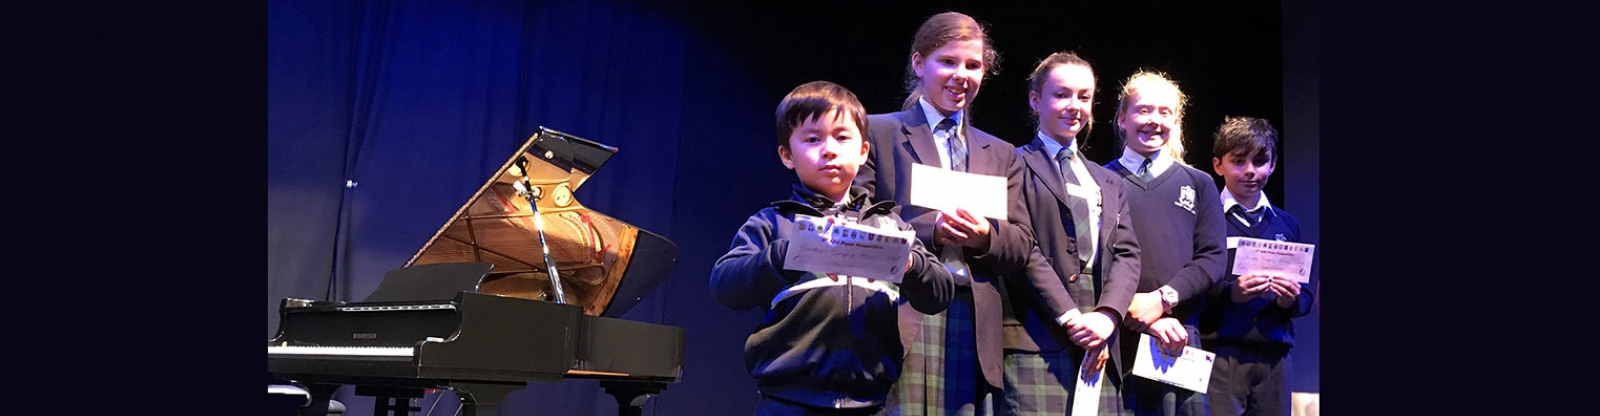 SVACS success at the ASC Piano Competition